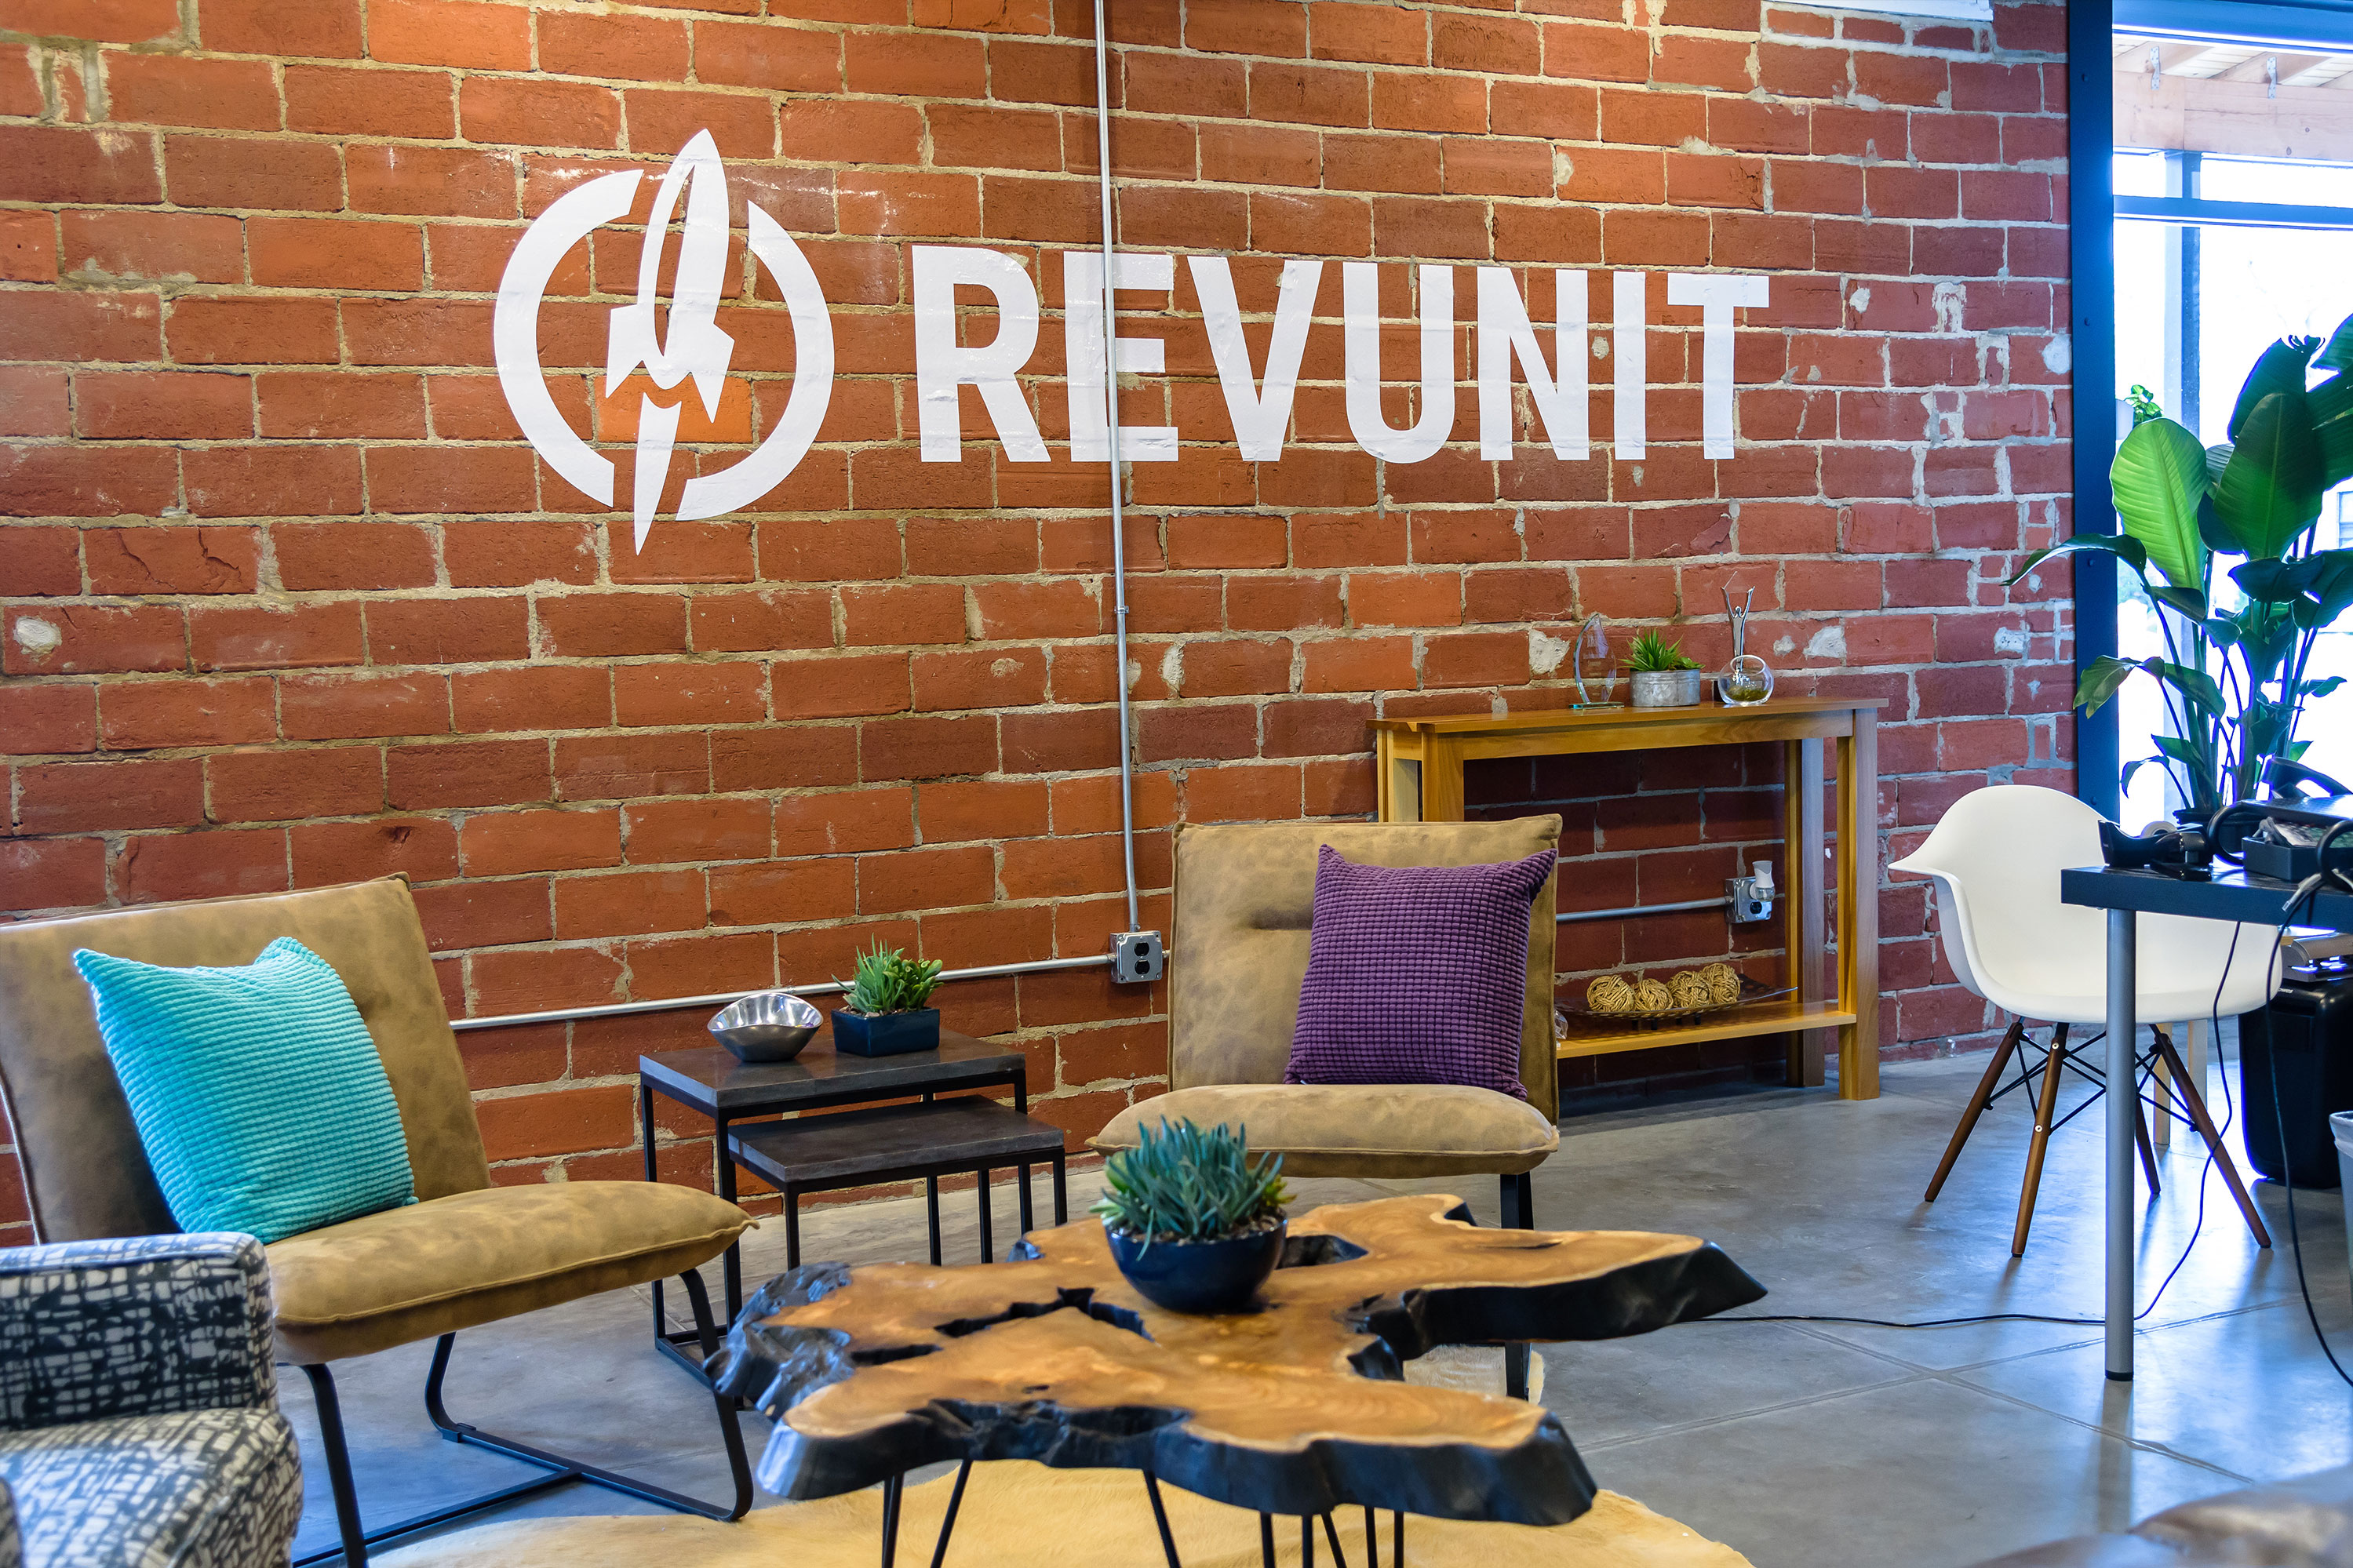 office with brick wall and RevUnit logo